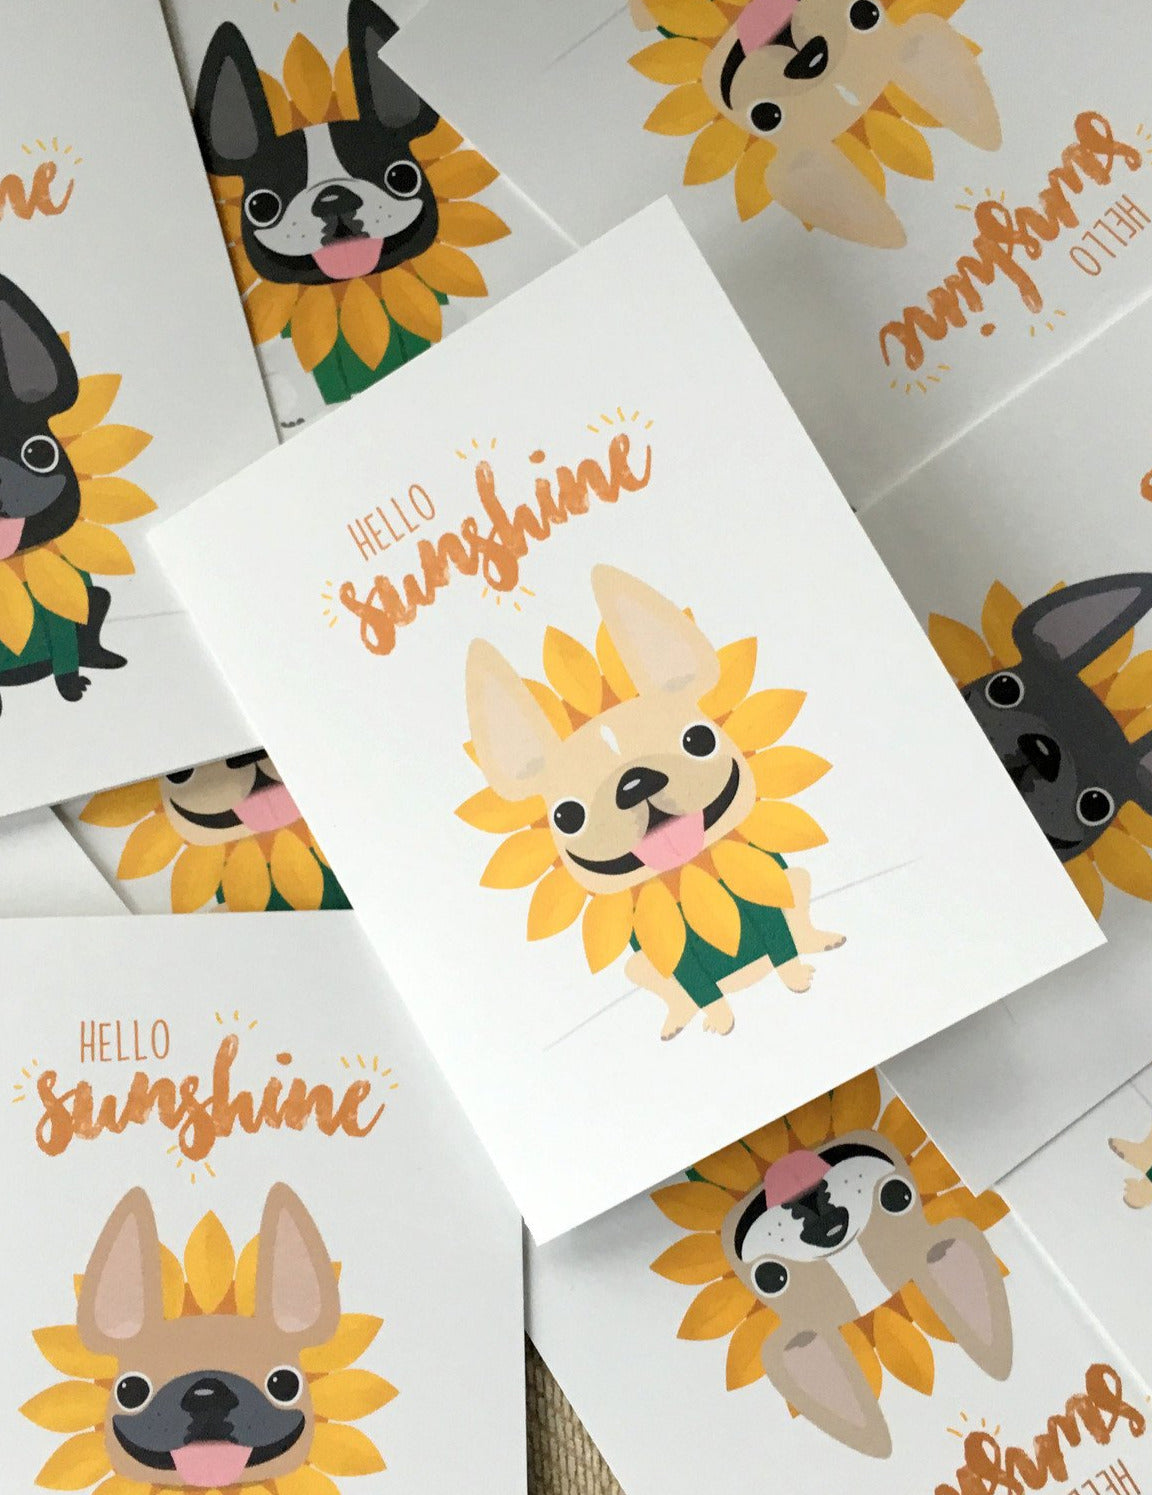 Hello Sunshine A20 French Bulldog Note Cards   Box Set of 20, 200, or 2020